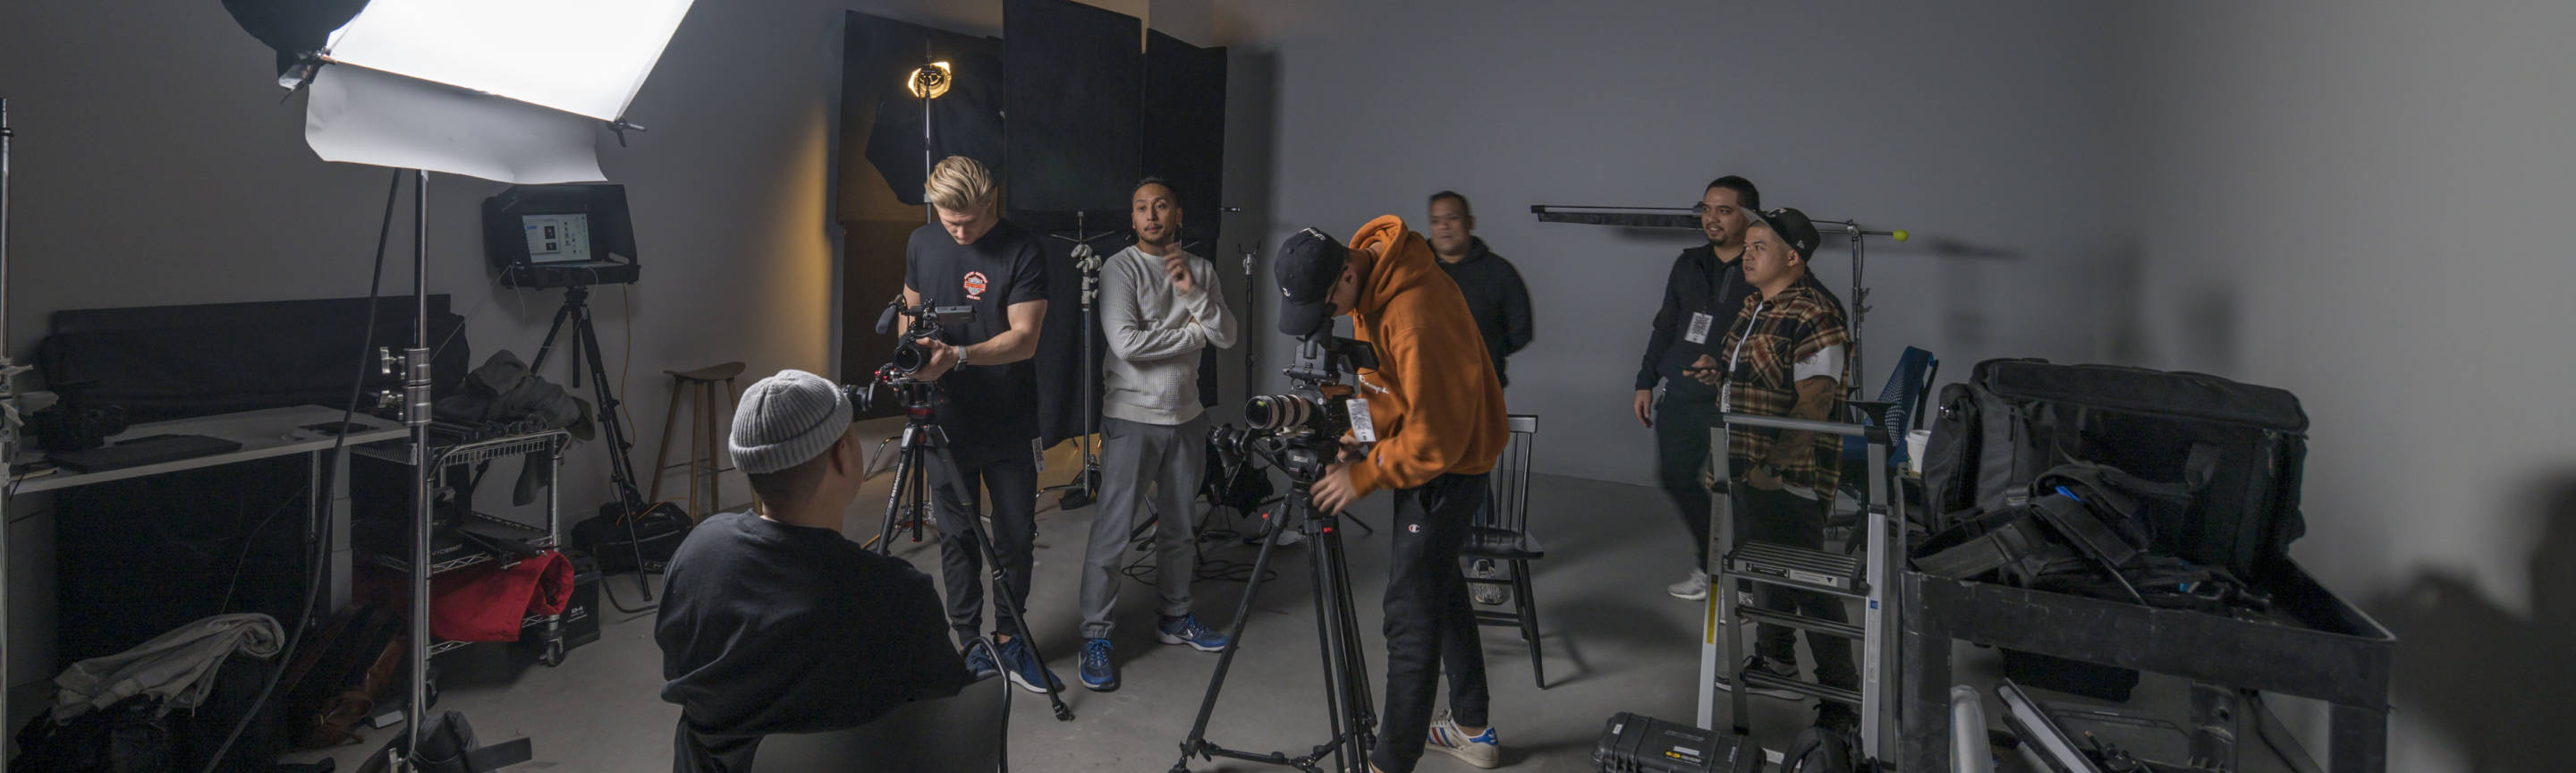 Person on a chair being filmed by production crew